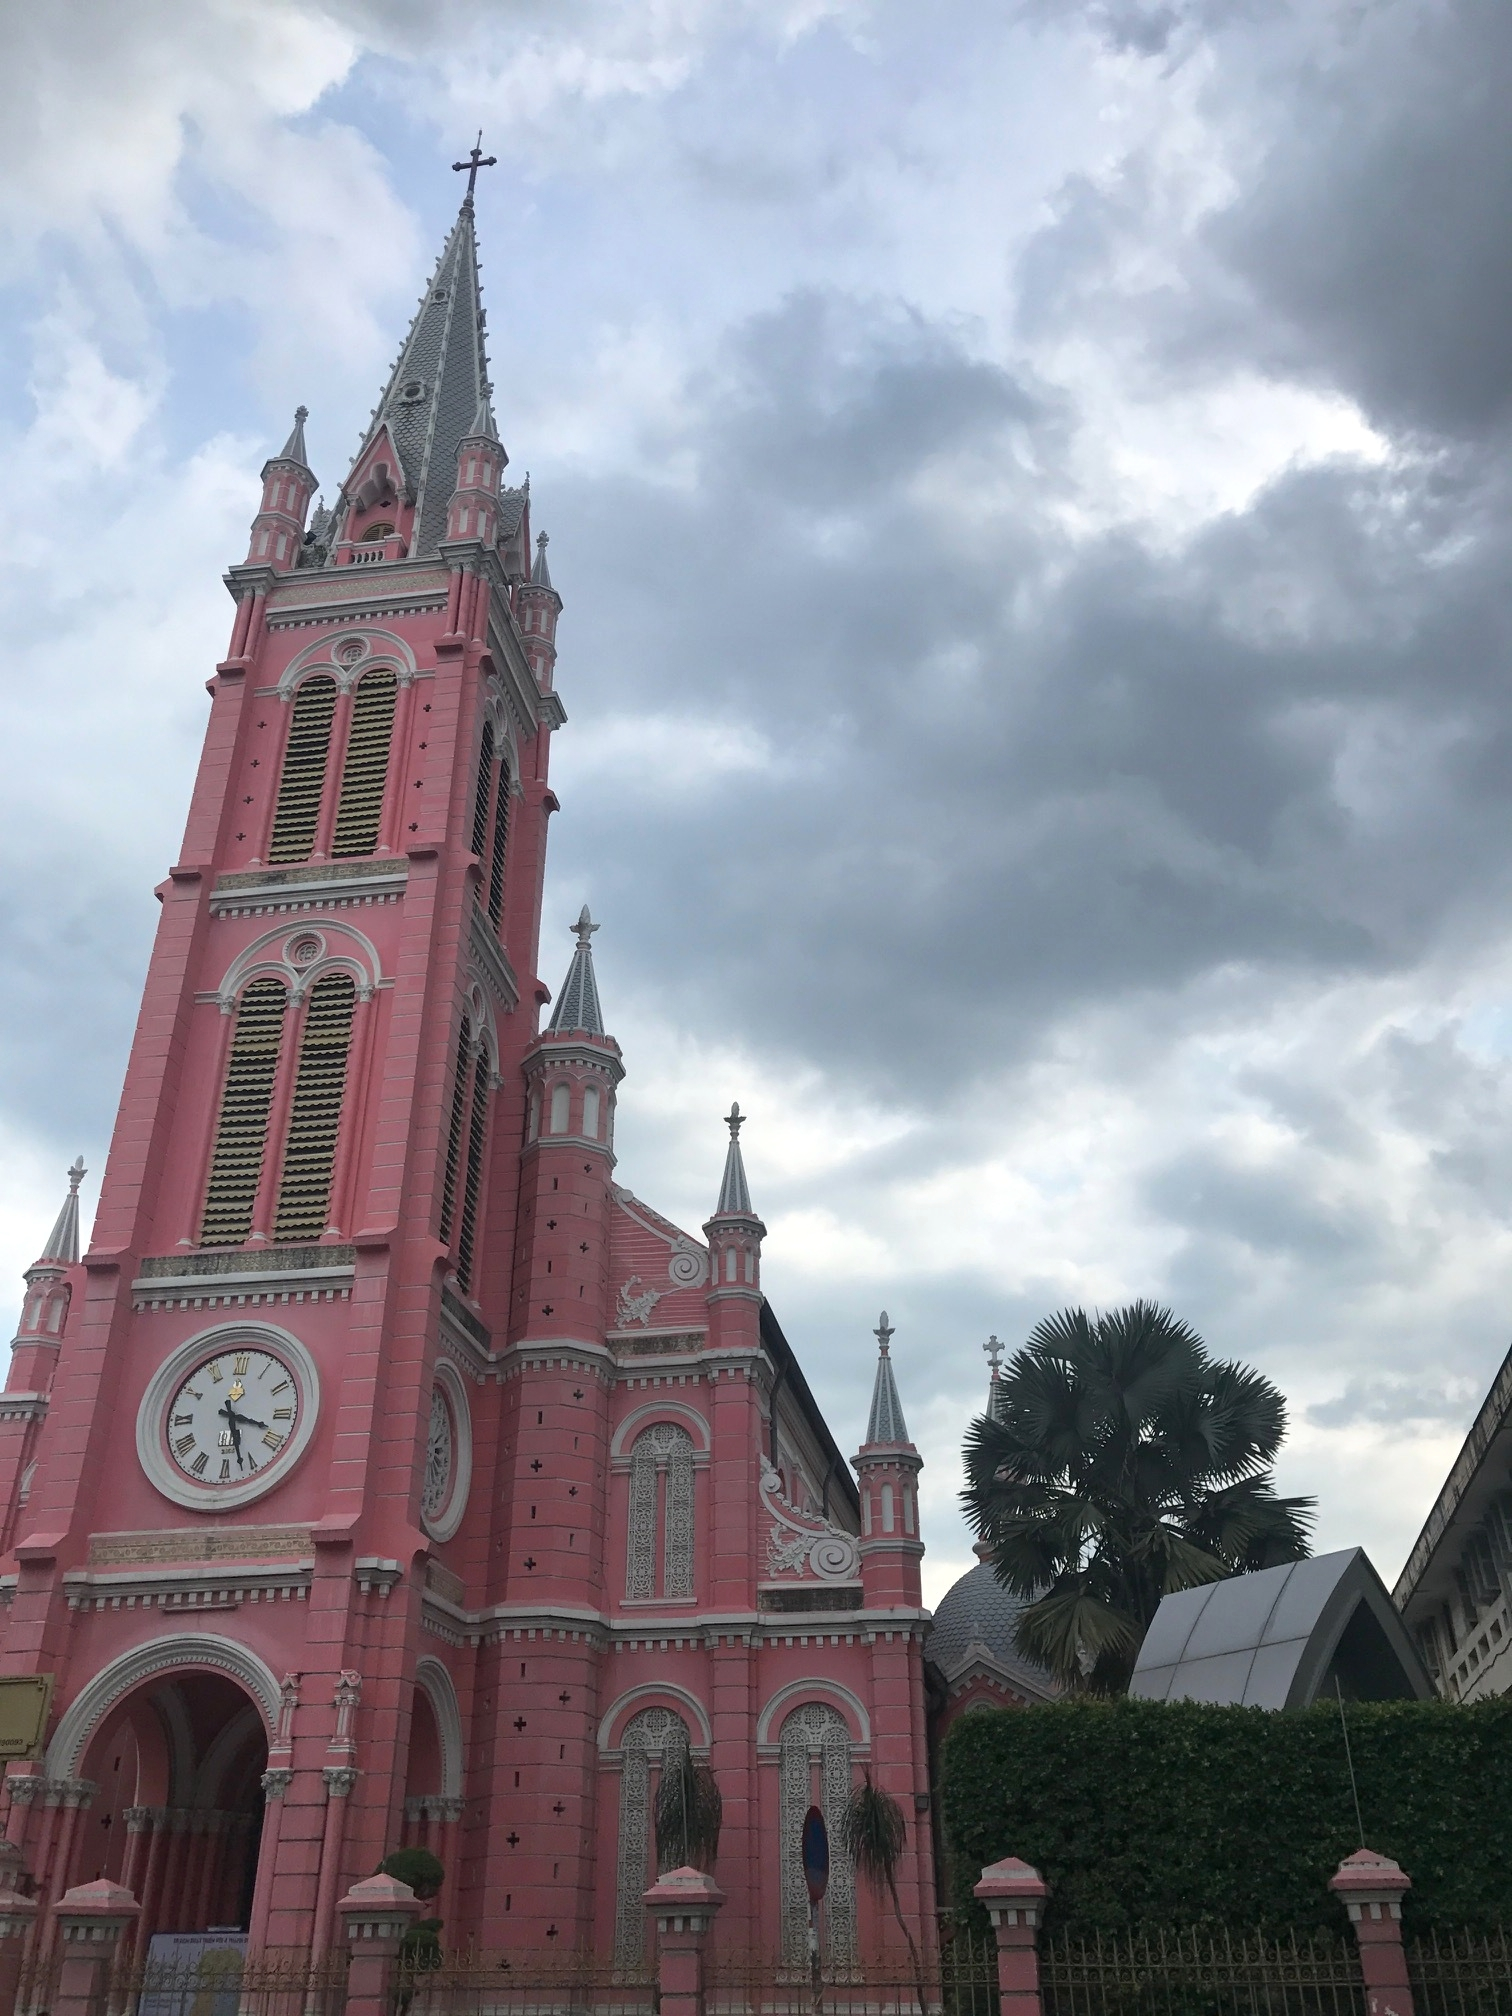 The Tan Dinh Church was founded in 1974 by Father Donatien Éveillard (1835-1883)